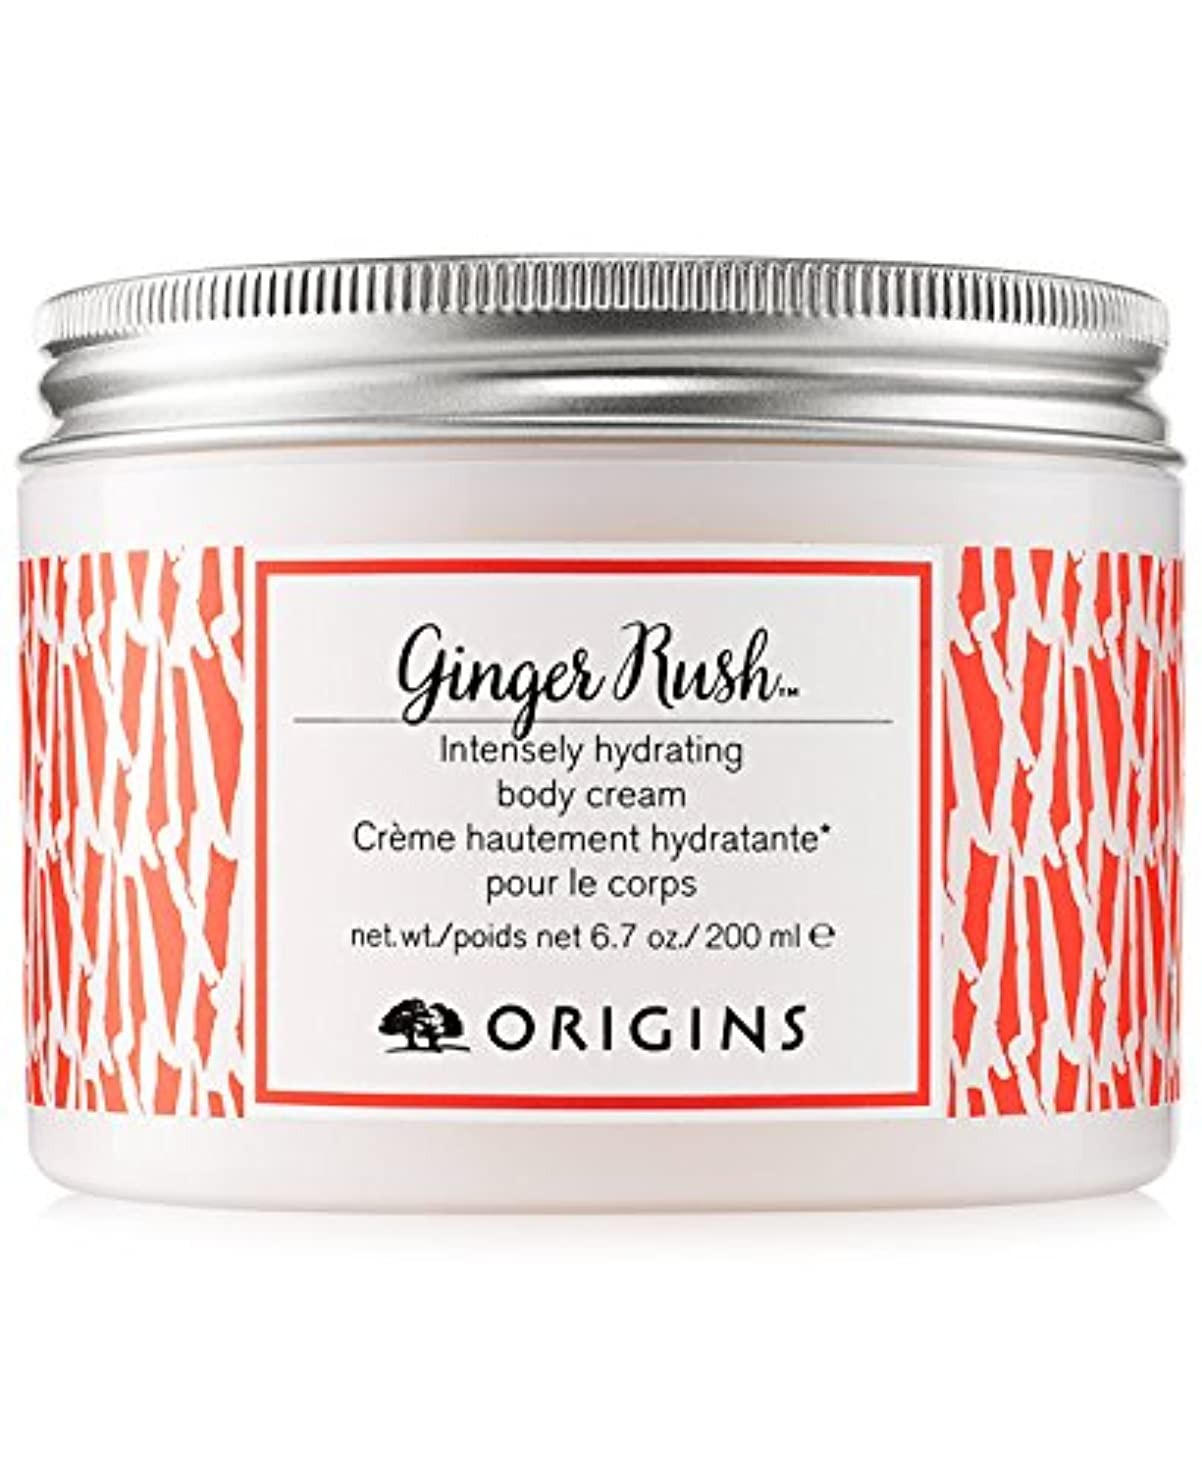 アンタゴニストダンス推定するOrigins Ginger Rush Hydrating Body Cream, 6.7 oz.200 ml